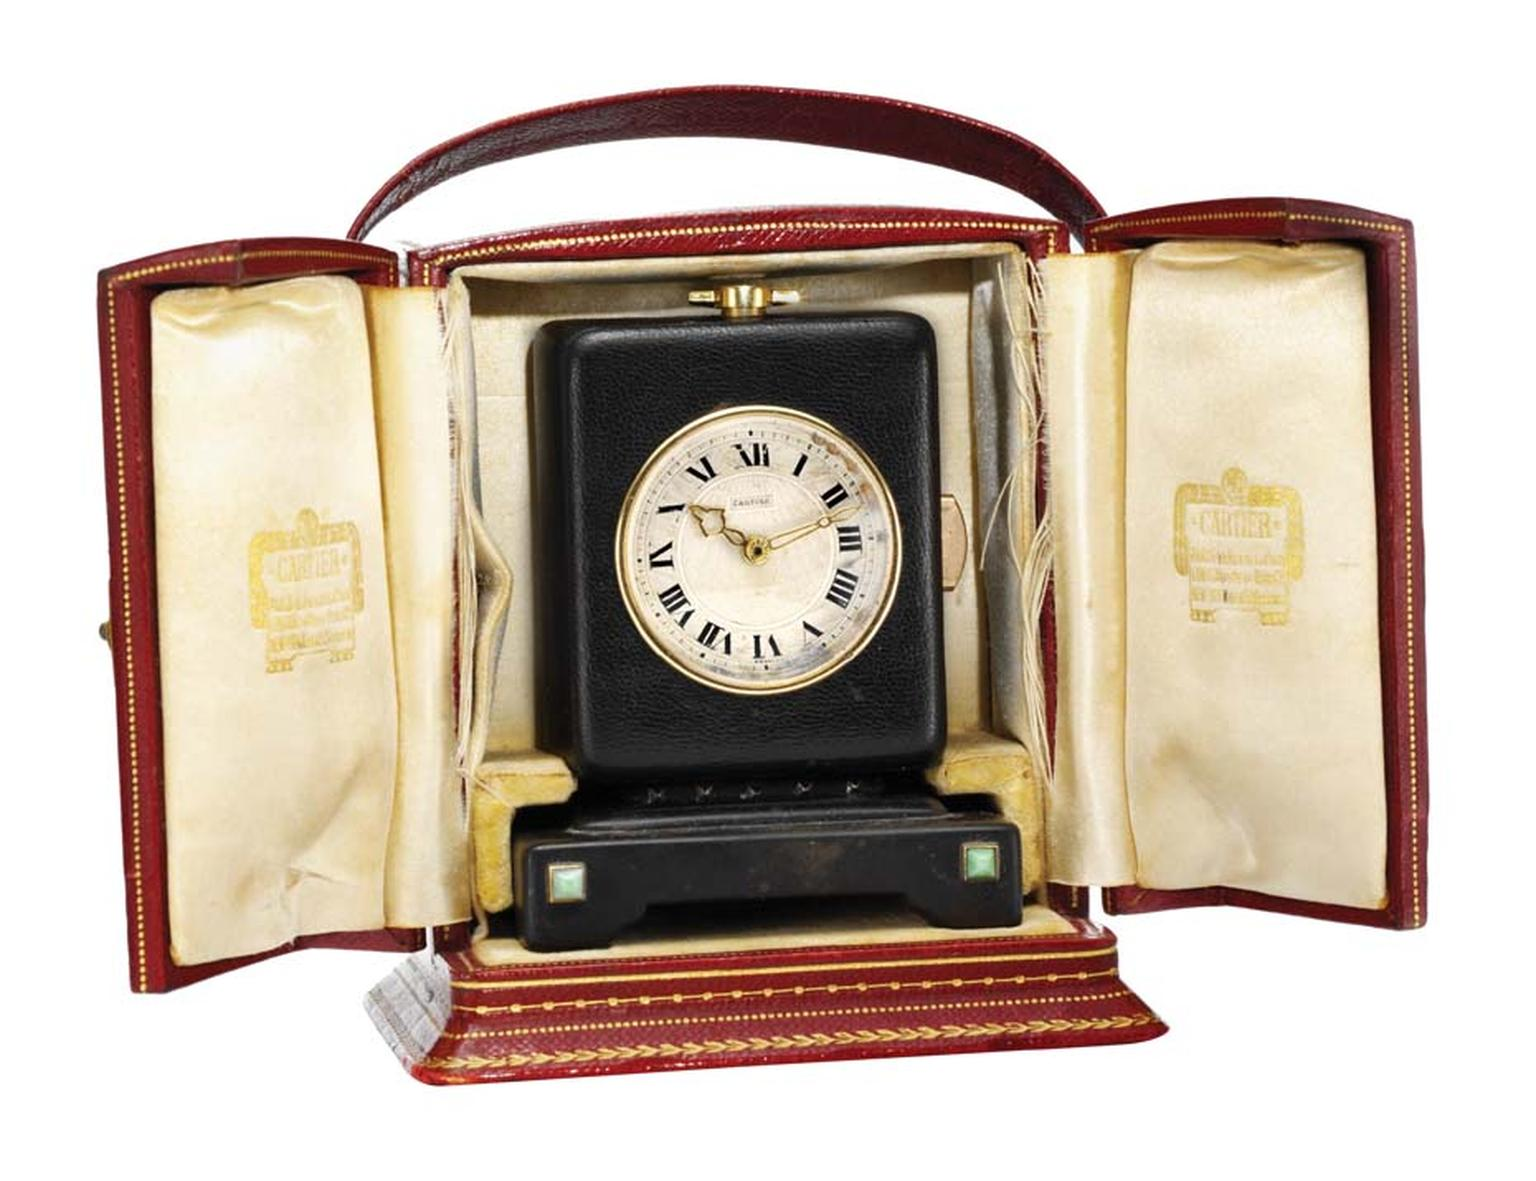 Cartier art deco keyless minute repeating desk clock ($34,000), available at 1stdibs.com. Image by: ScullyFoto.com